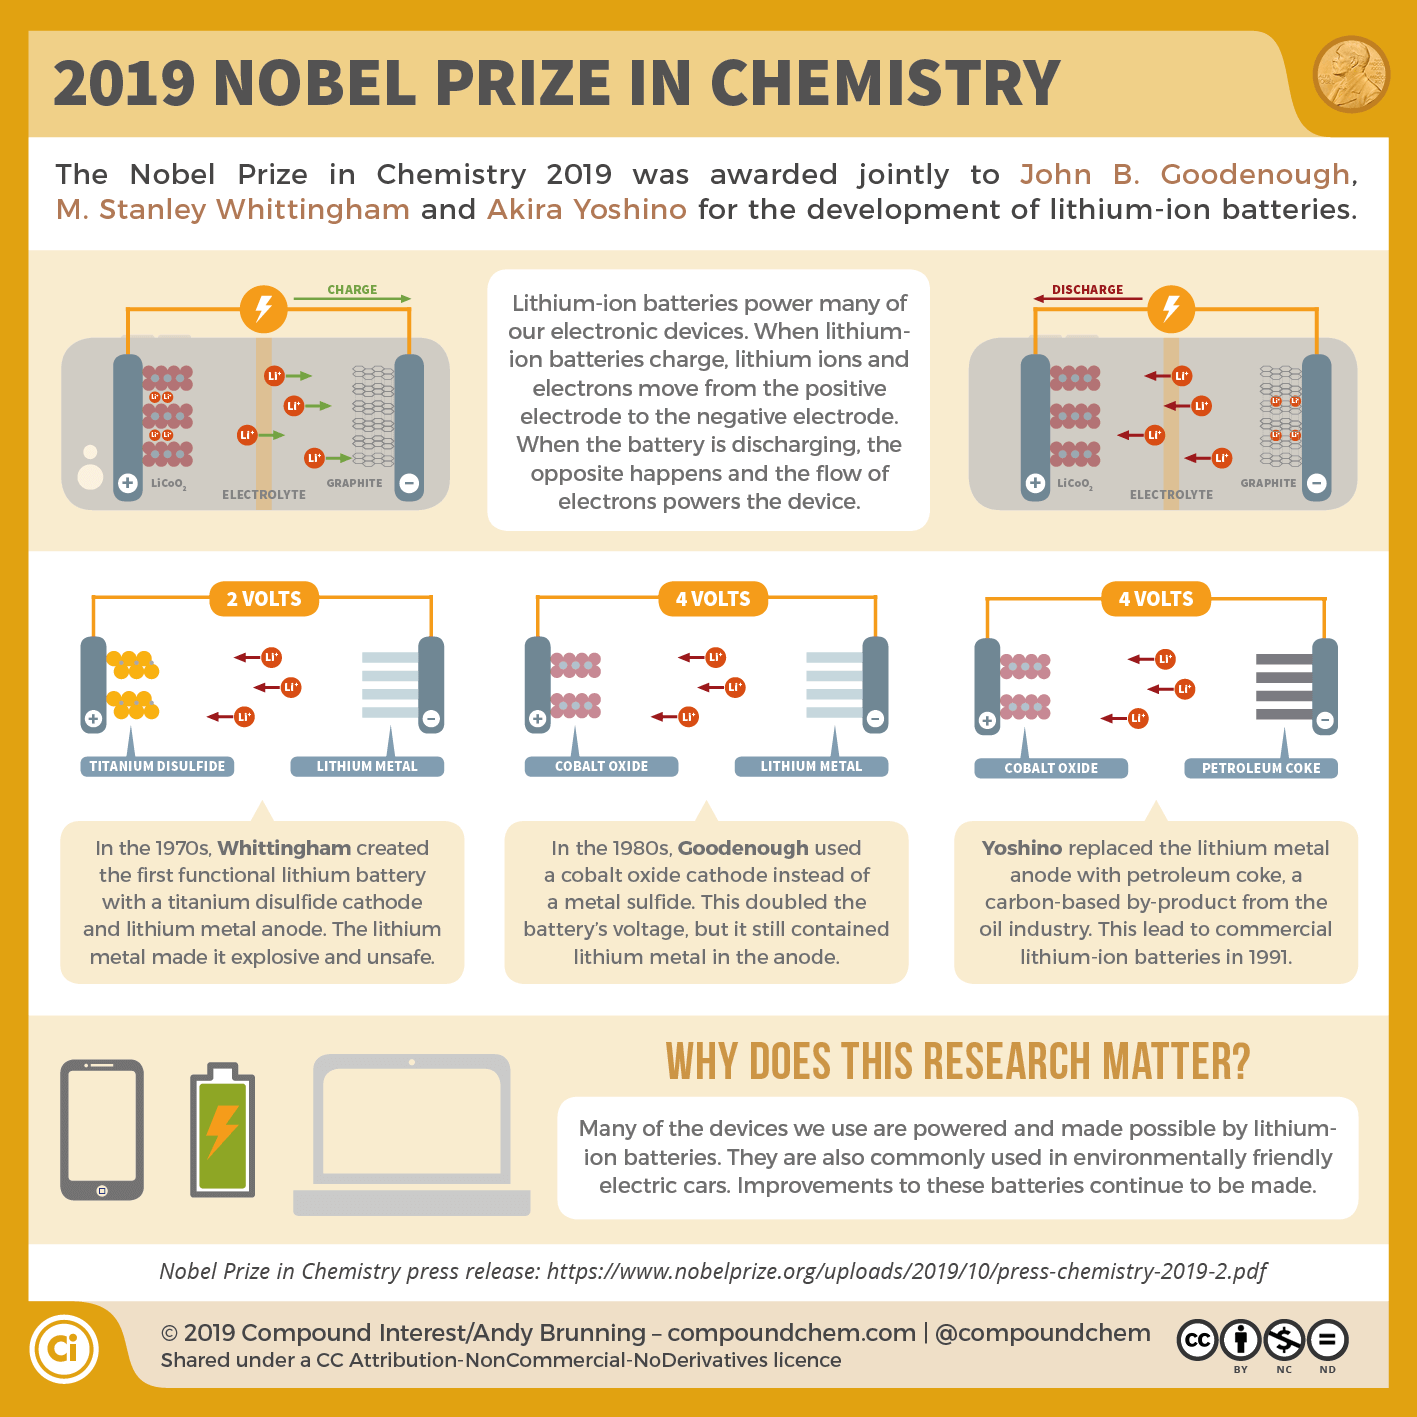 The 2019 Nobel Prize in Chemistry: The batteries that power